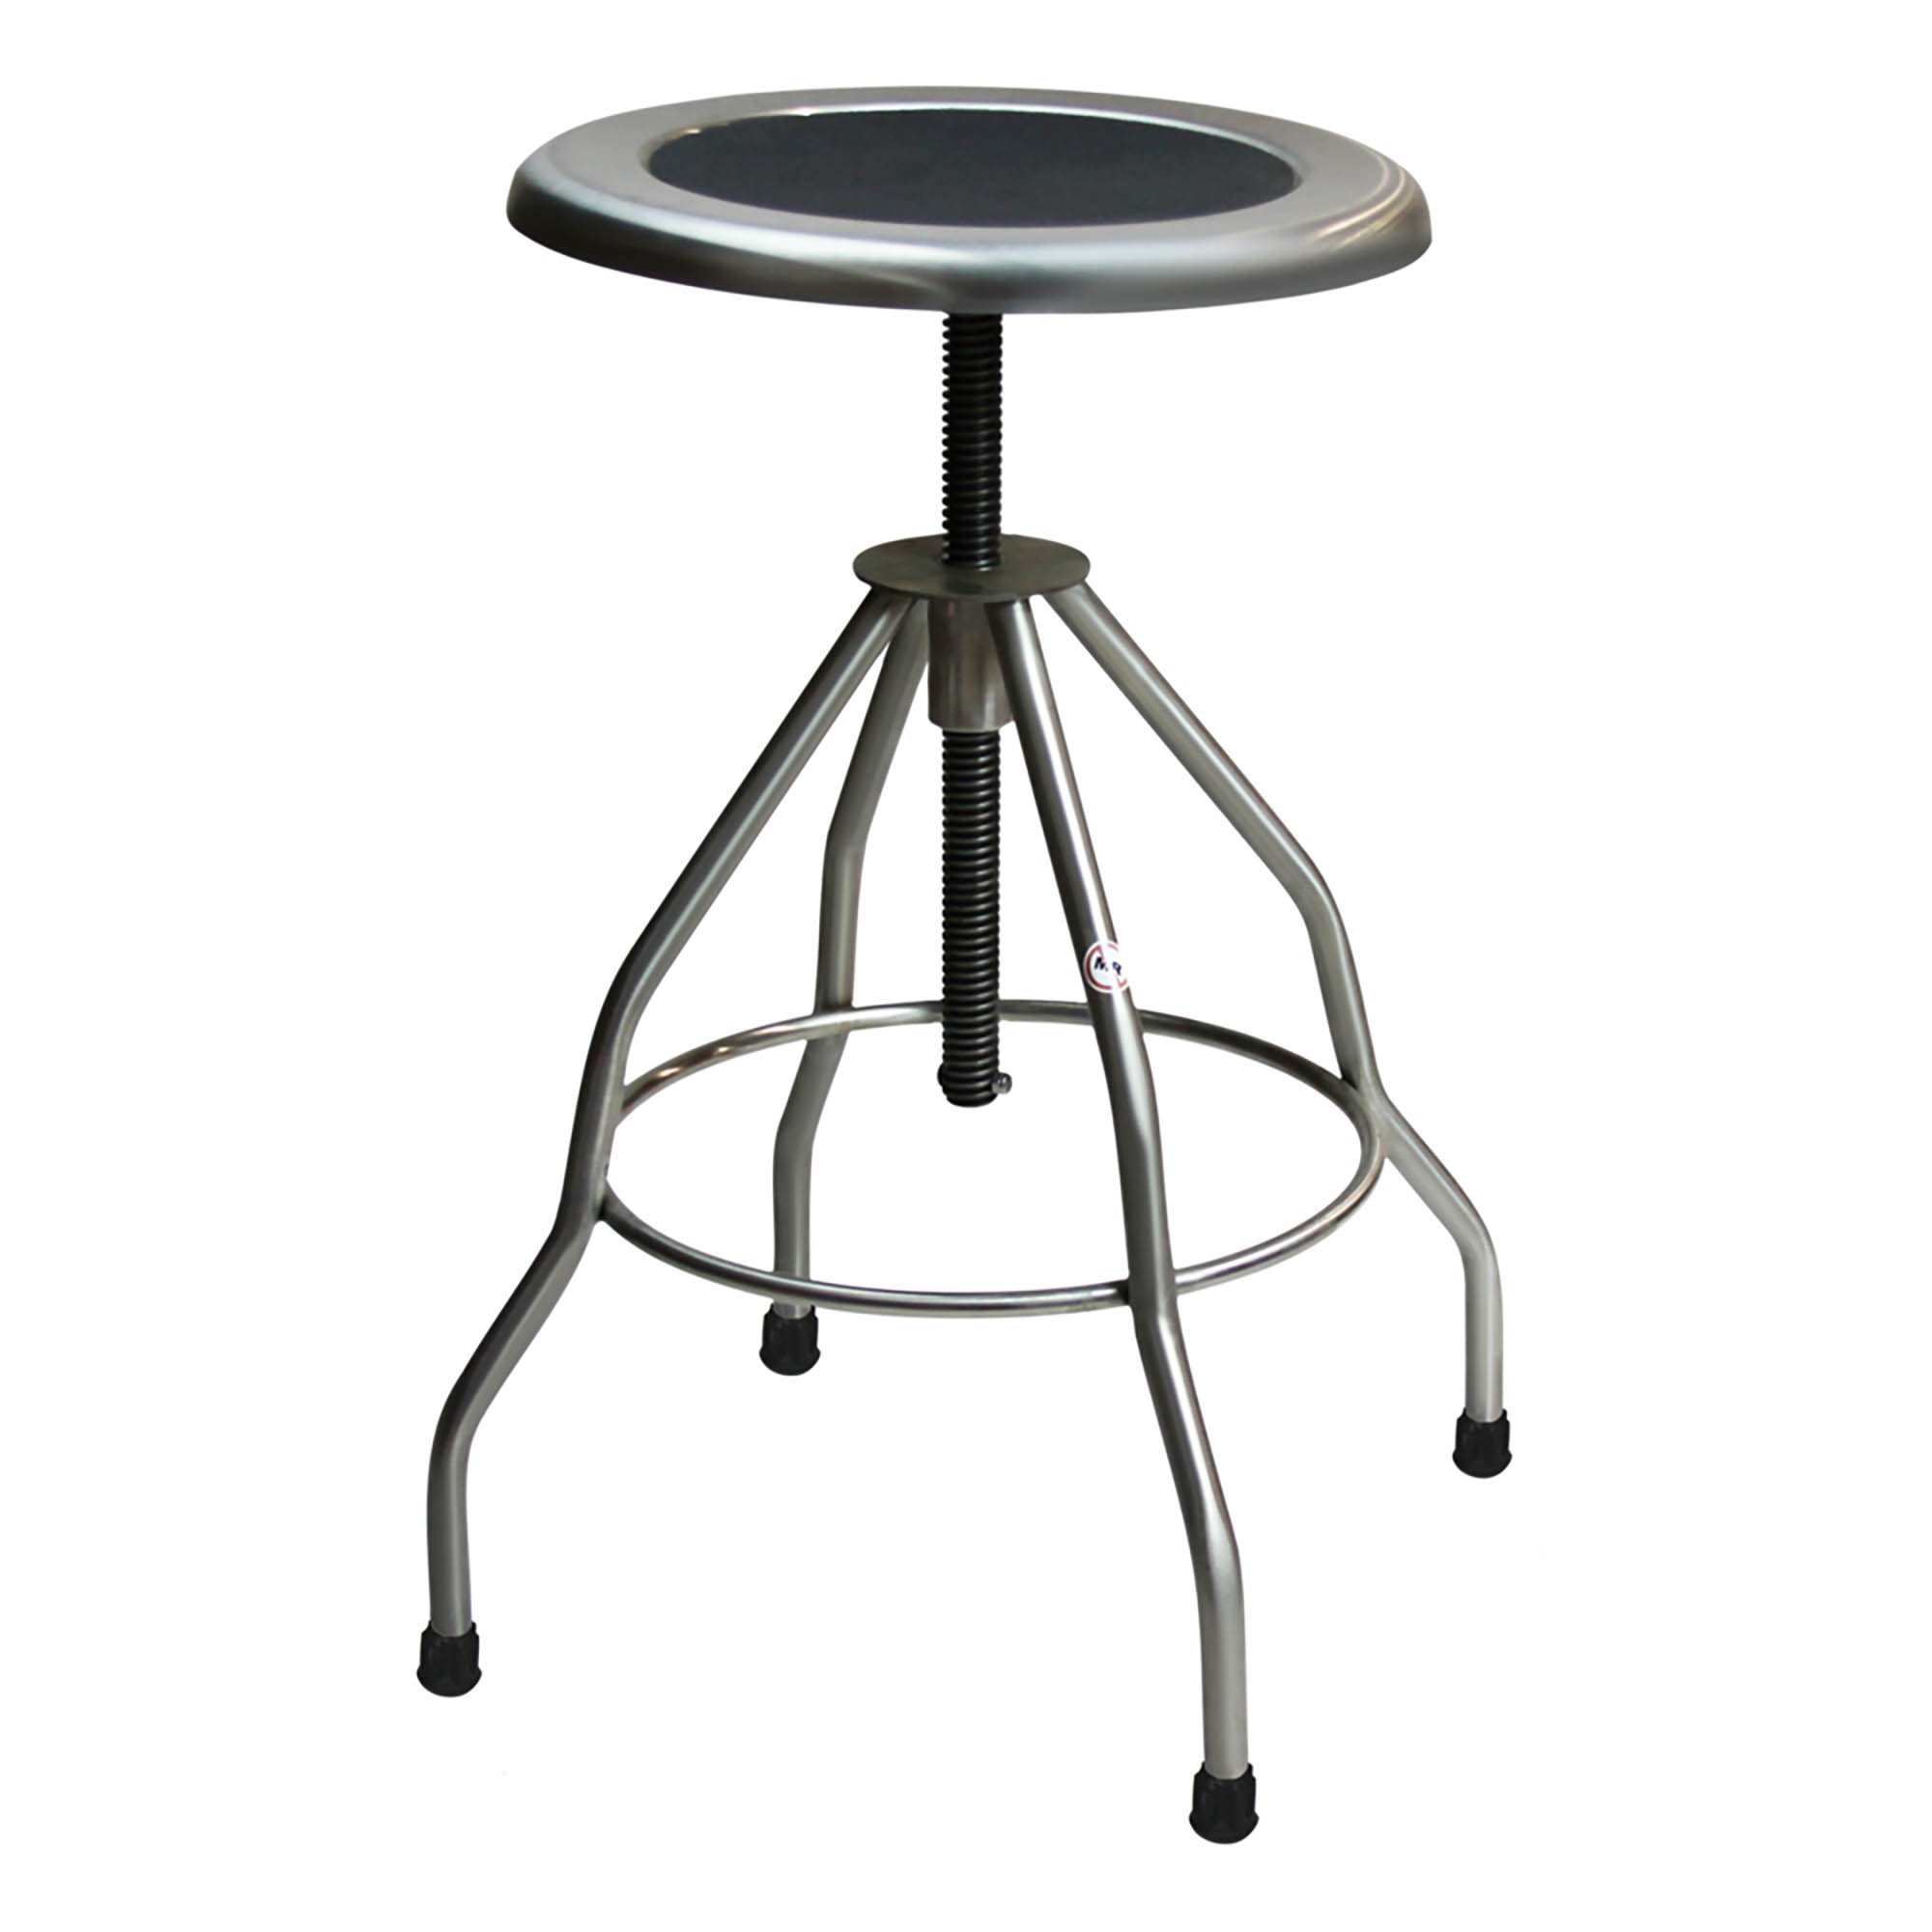 Stainless Steel Stool Recessed Seat with Rubber Tips